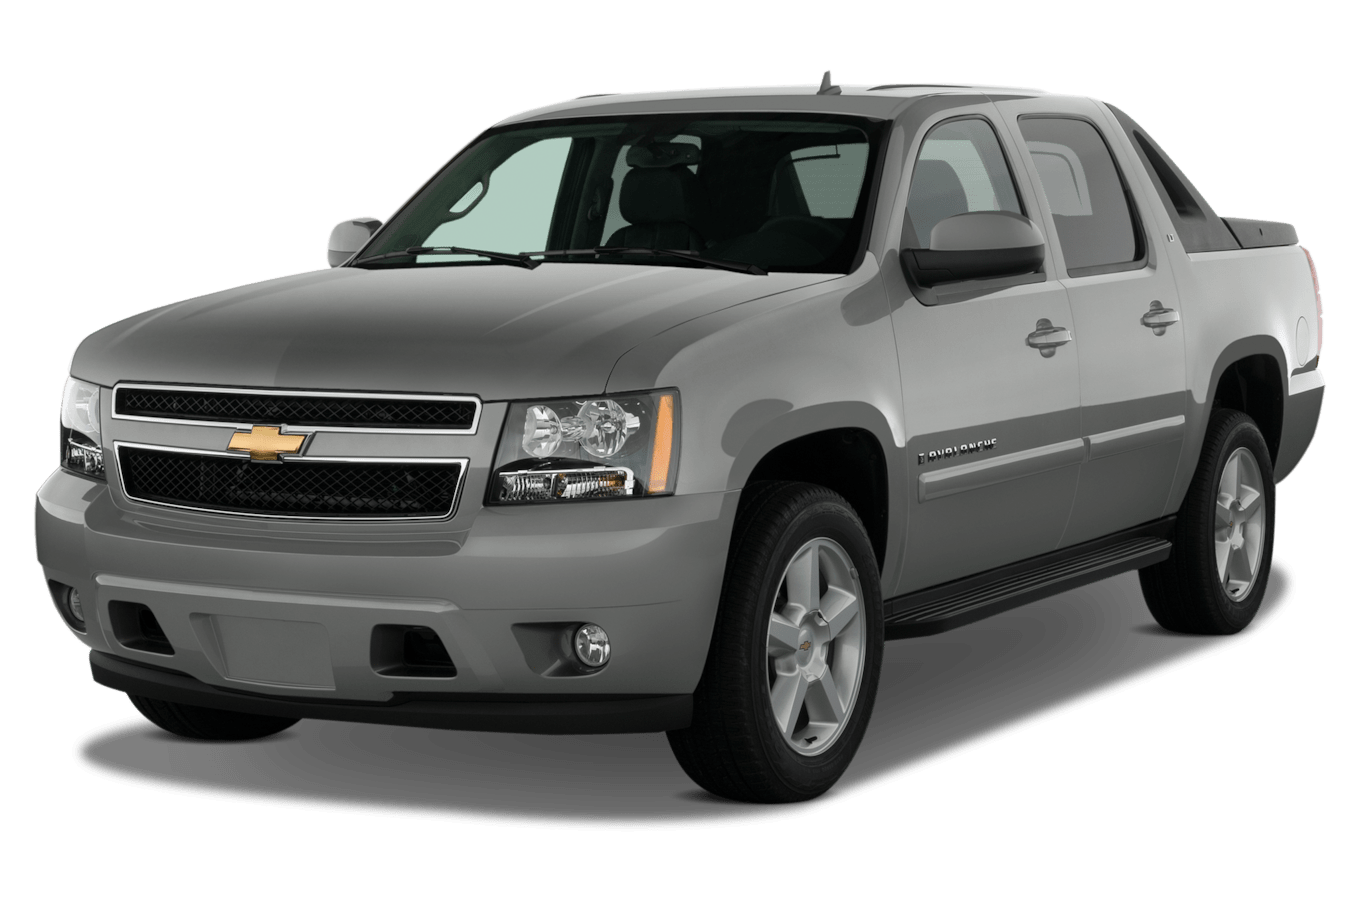 small resolution of chevrolet avalanche trailer plug wiring wiring diagram new 2011 chevrolet avalanche reviews research avalanche prices